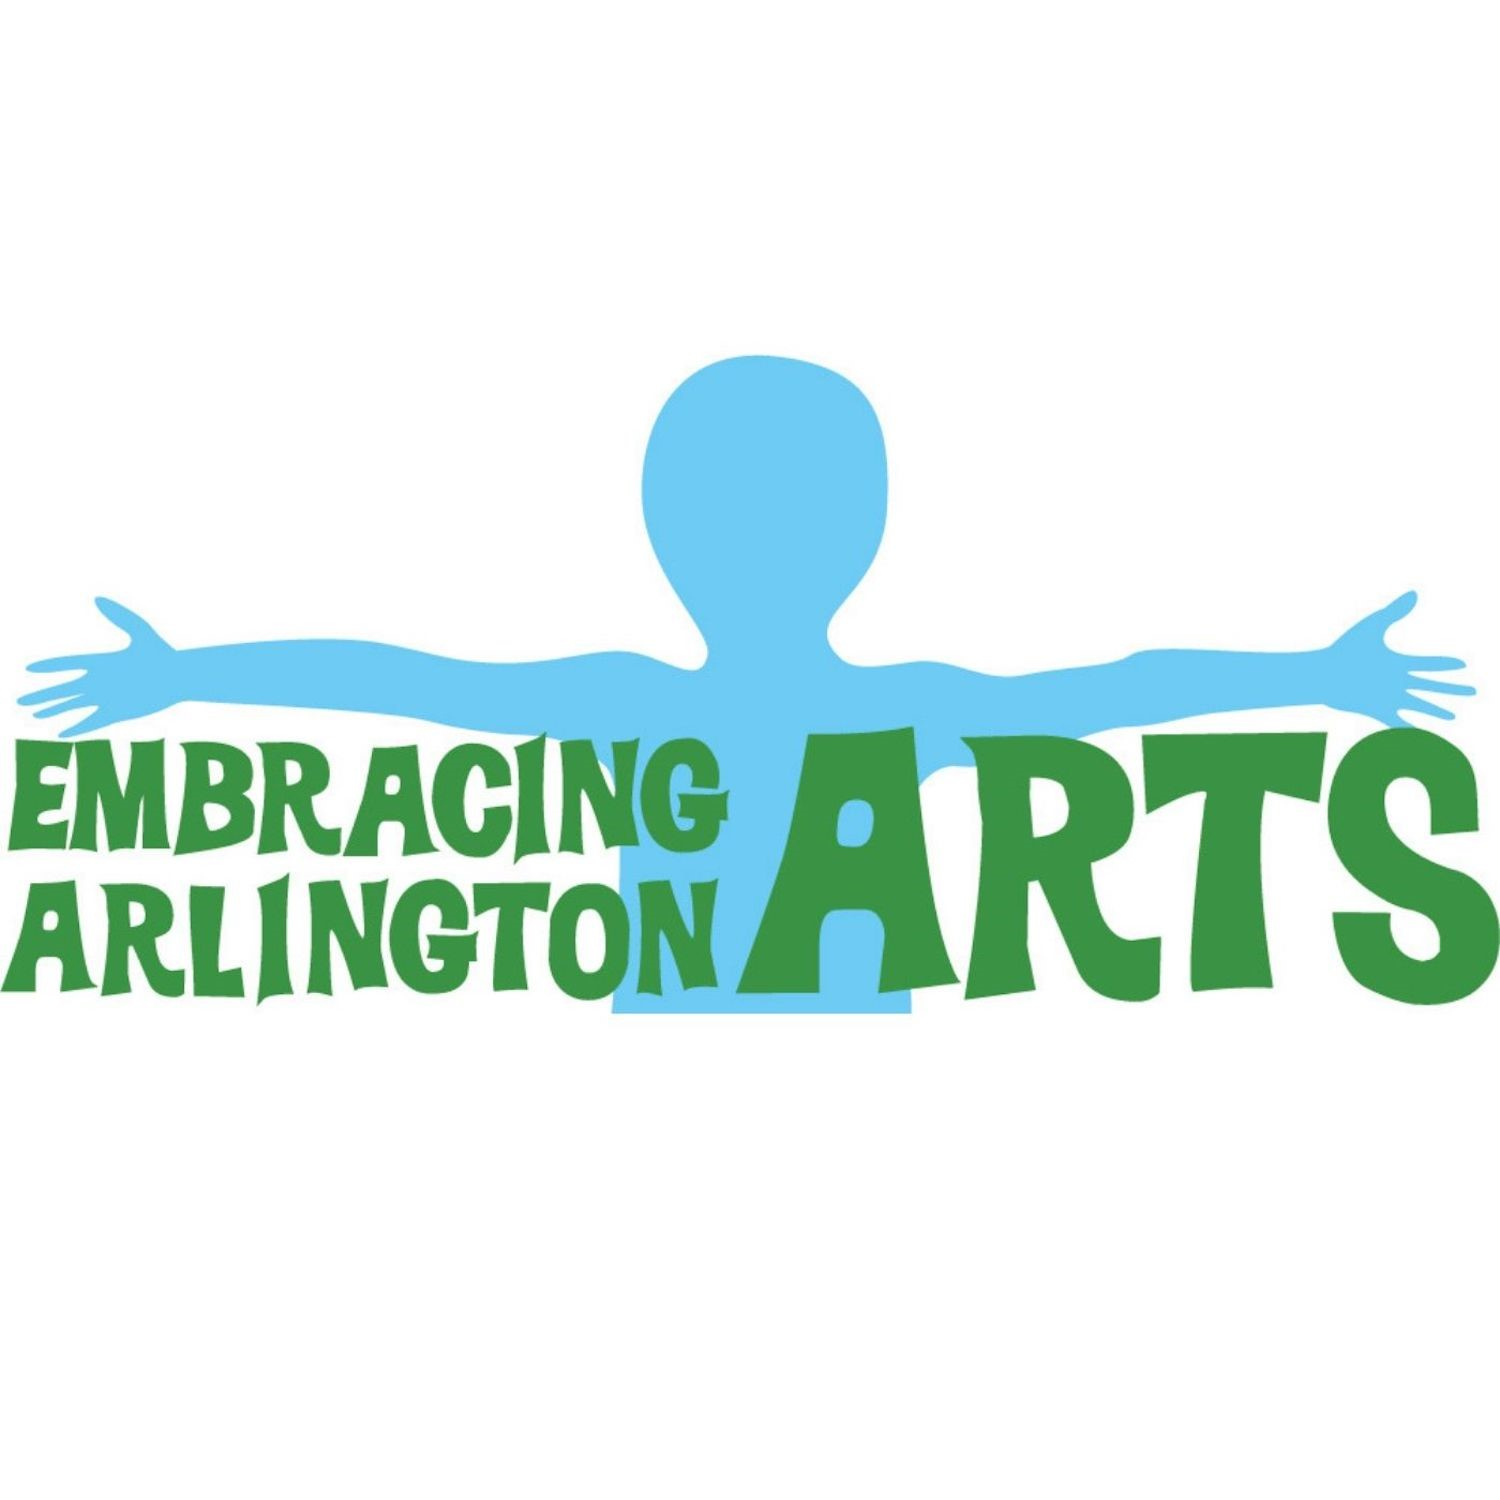 Holly Koons, Arlington Arts Center Executive Director